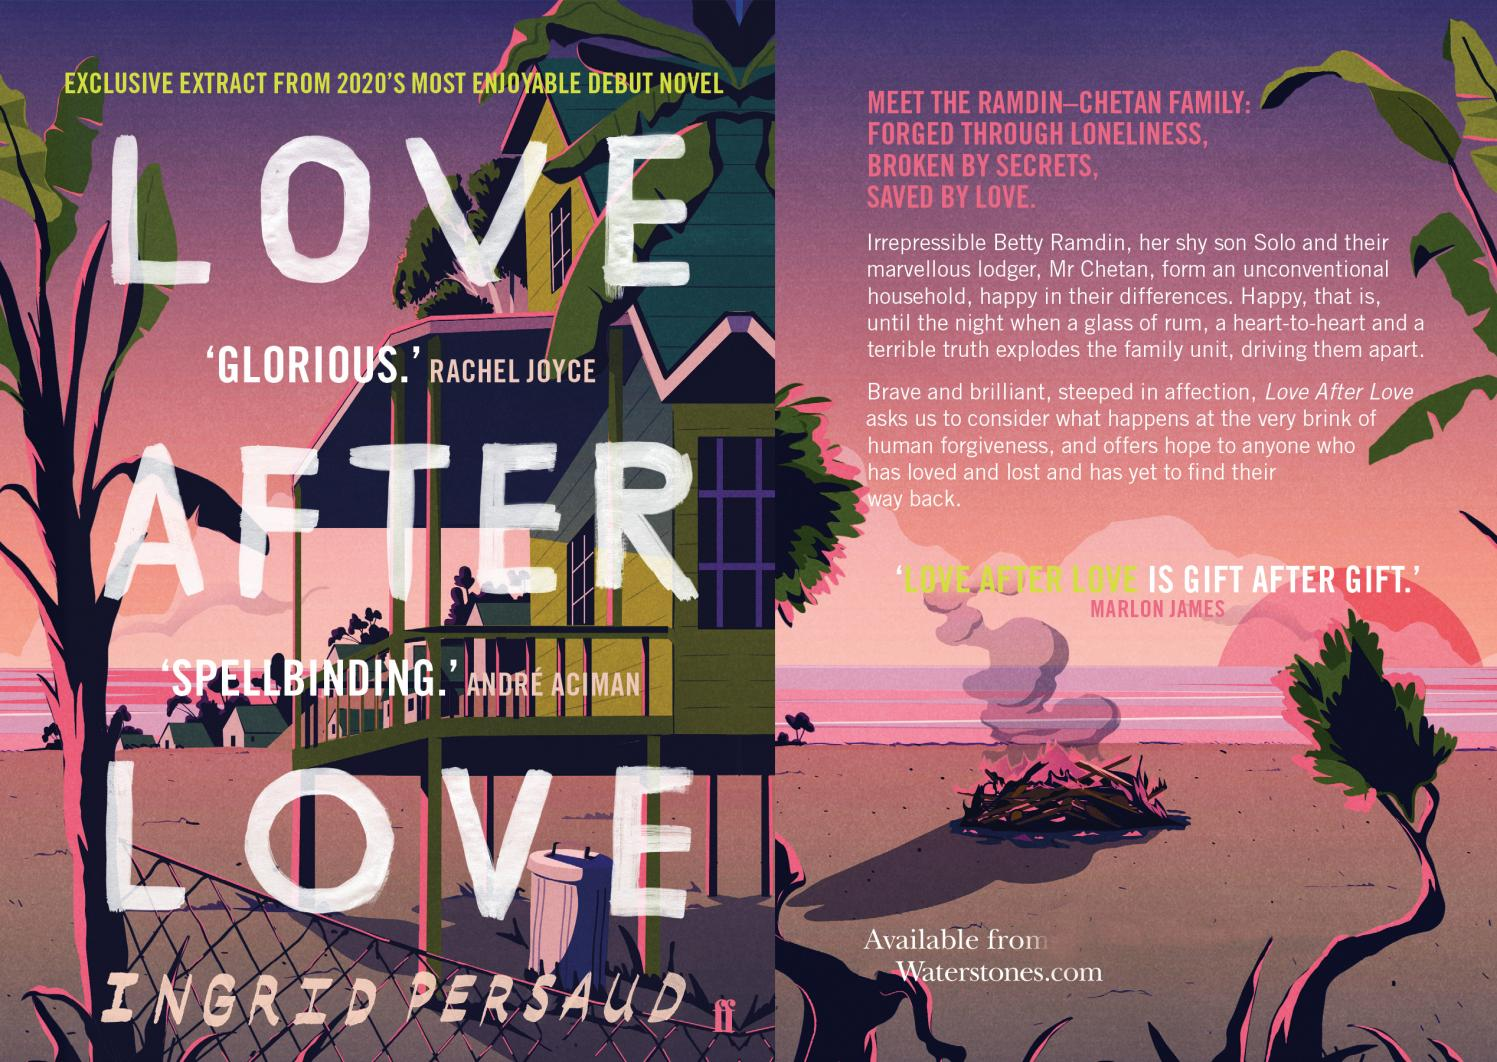 Love After Love Exclusive Extract By Faber Issuu